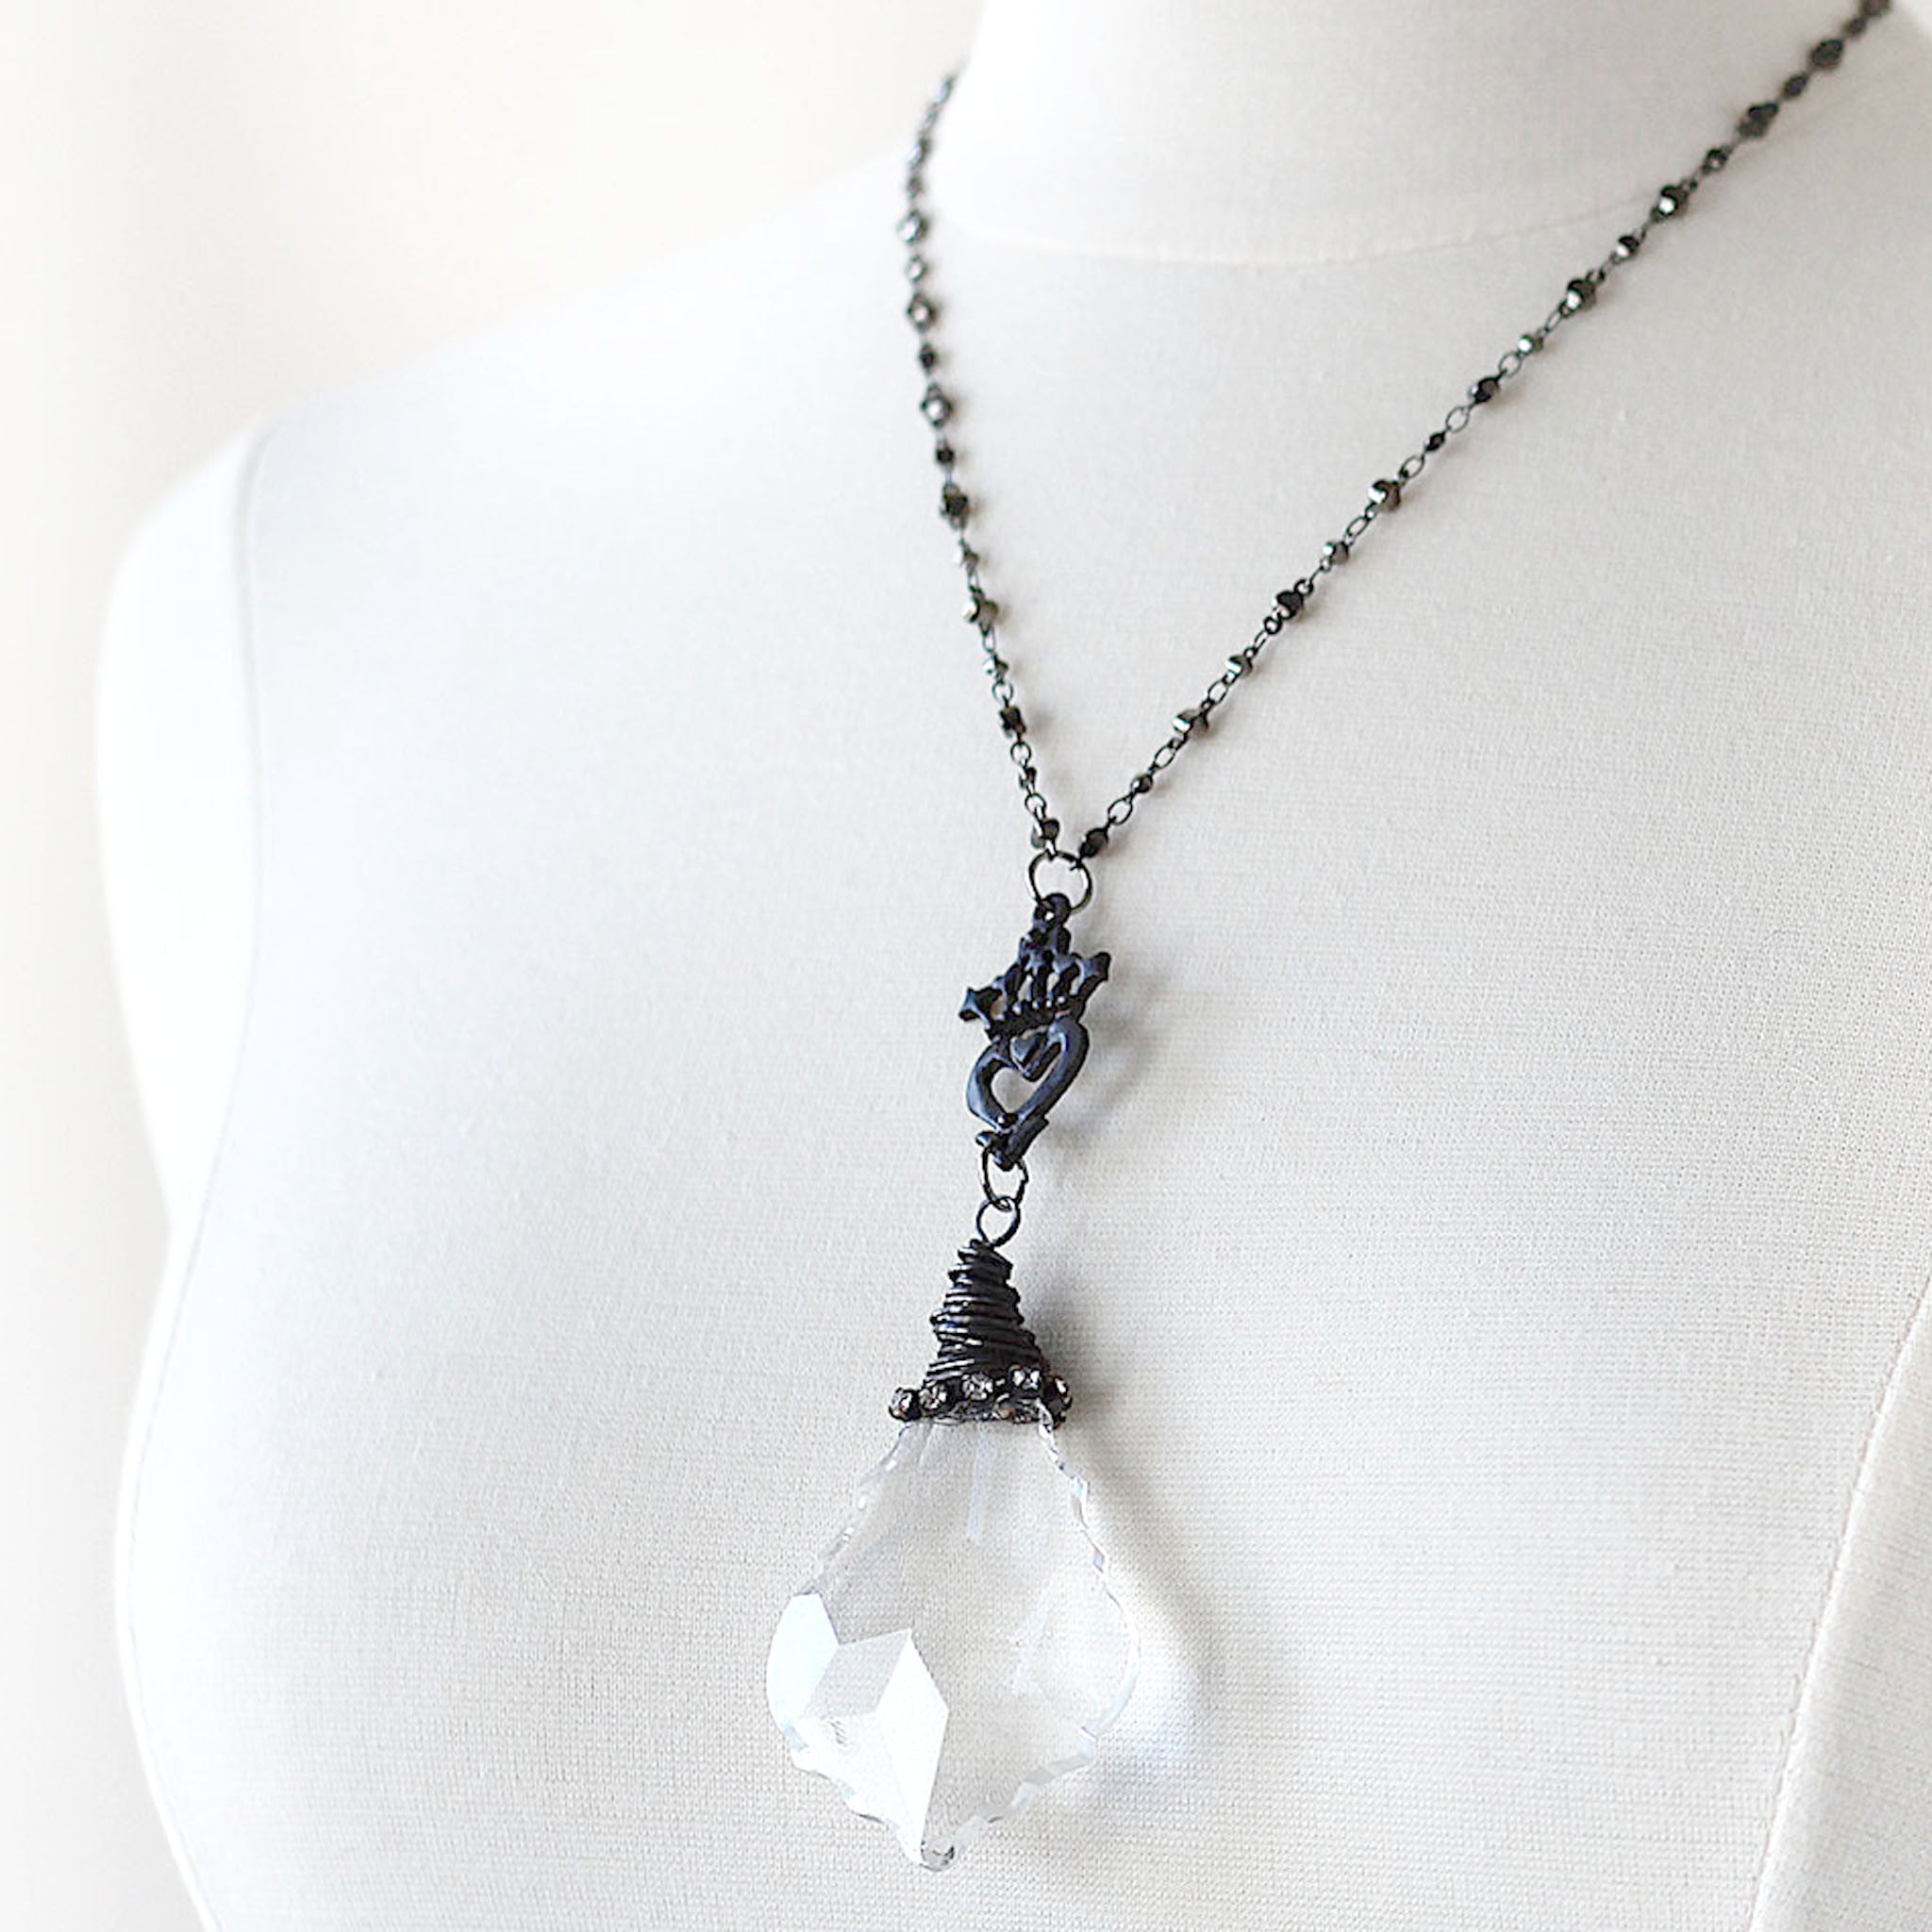 Chandelier Crystal Pendant Necklace Vintage Inspired - Shabby ...